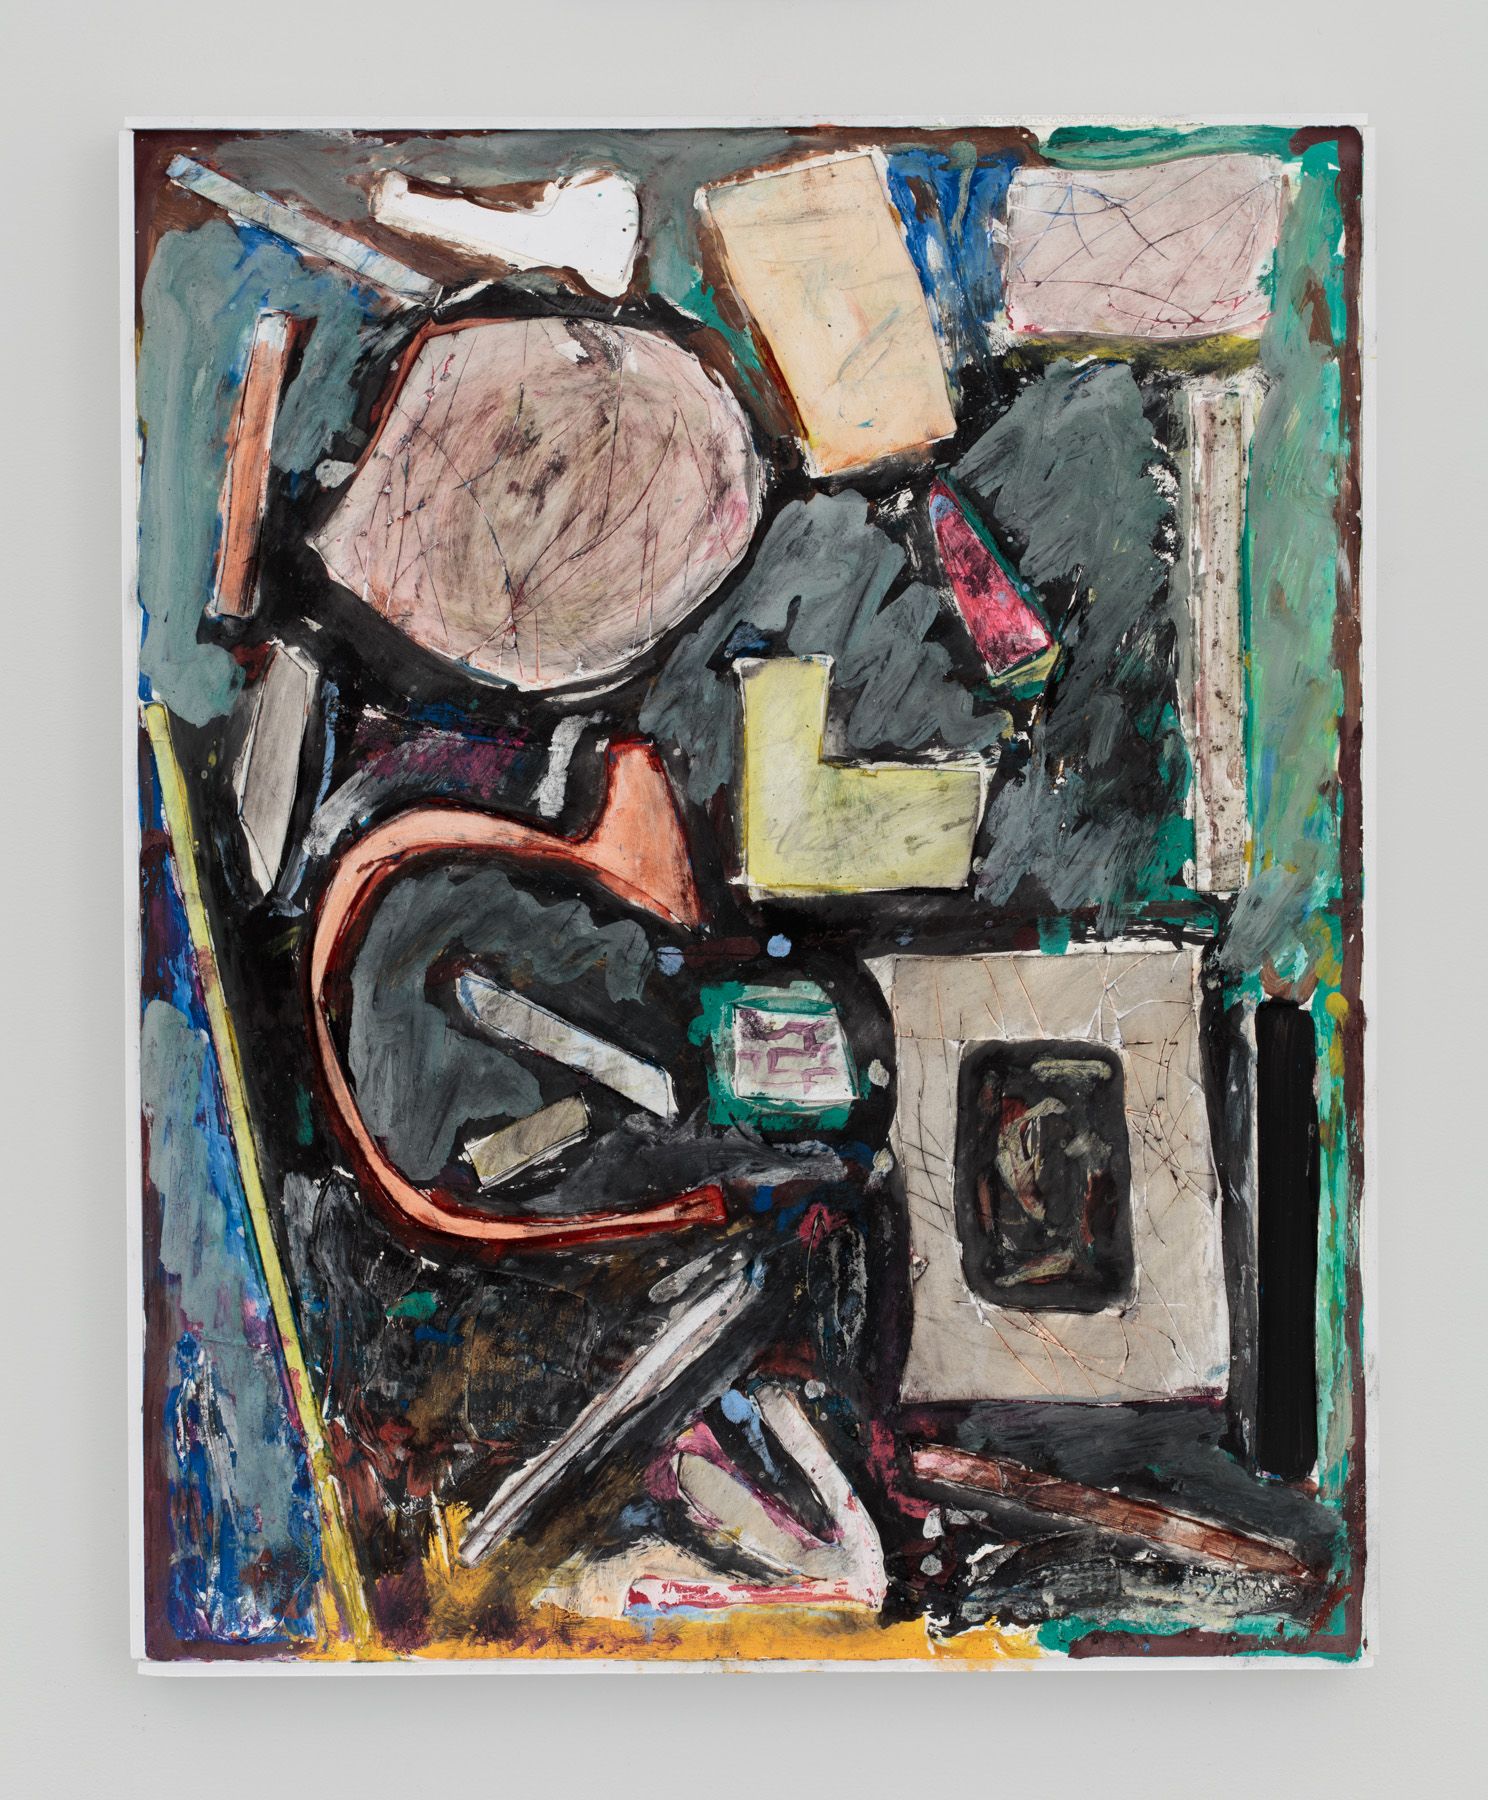 Untitled  20 inches x 16 inches  Oil, acrylic, enamel, foamcore, plaster on panel  2016